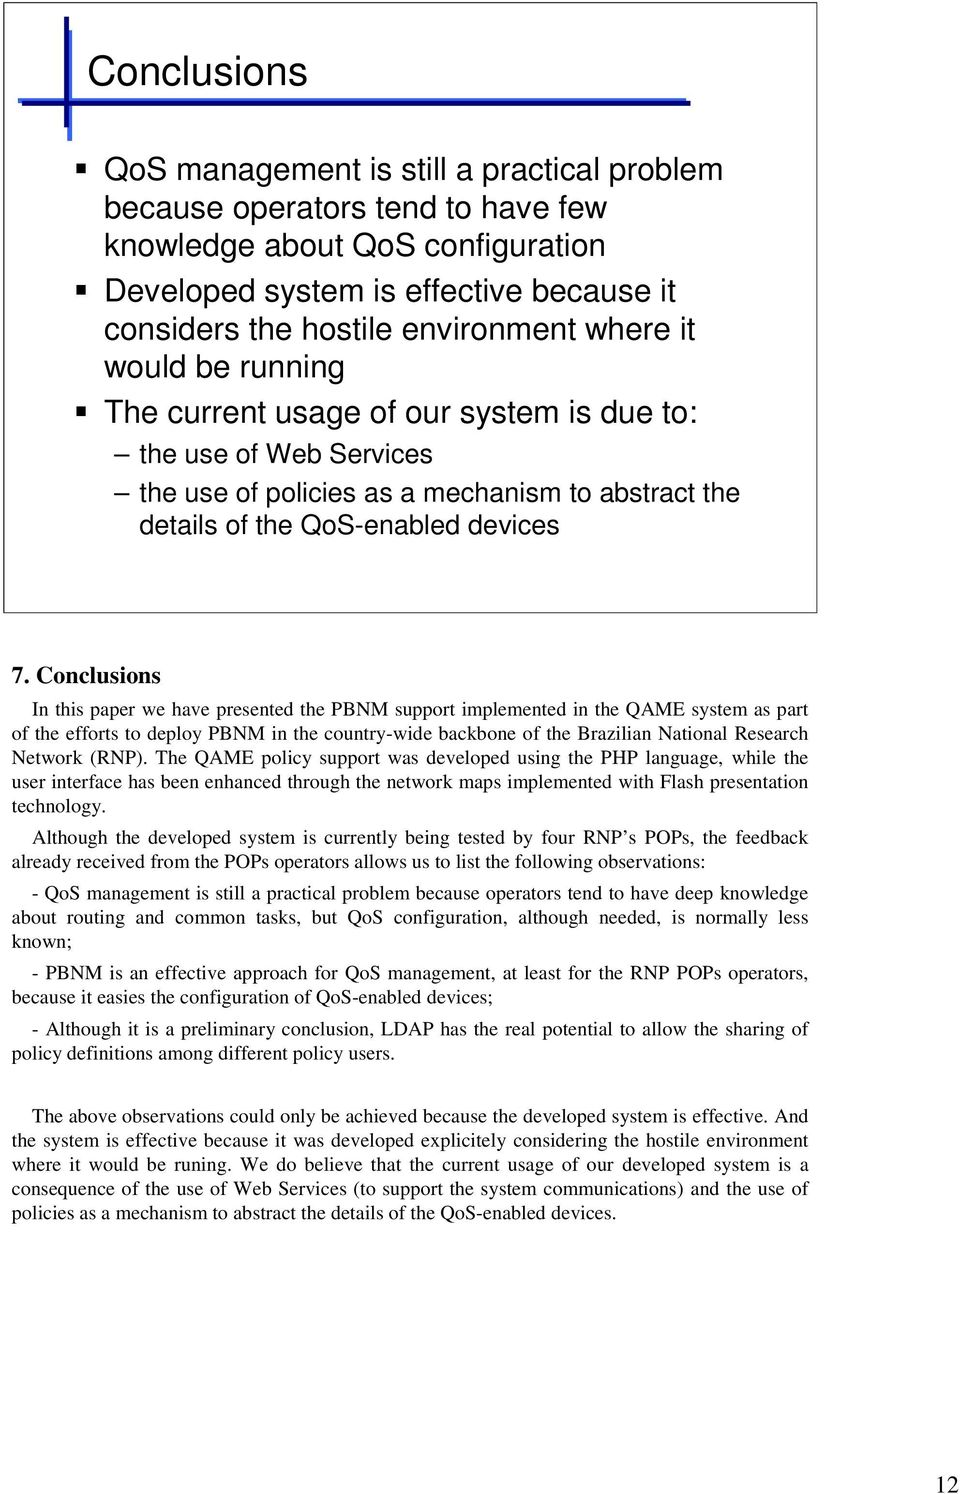 Conclusions In this paper we have presented the PBNM support implemented in the QAME system as part of the efforts to deploy PBNM in the country-wide backbone of the Brazilian National Research